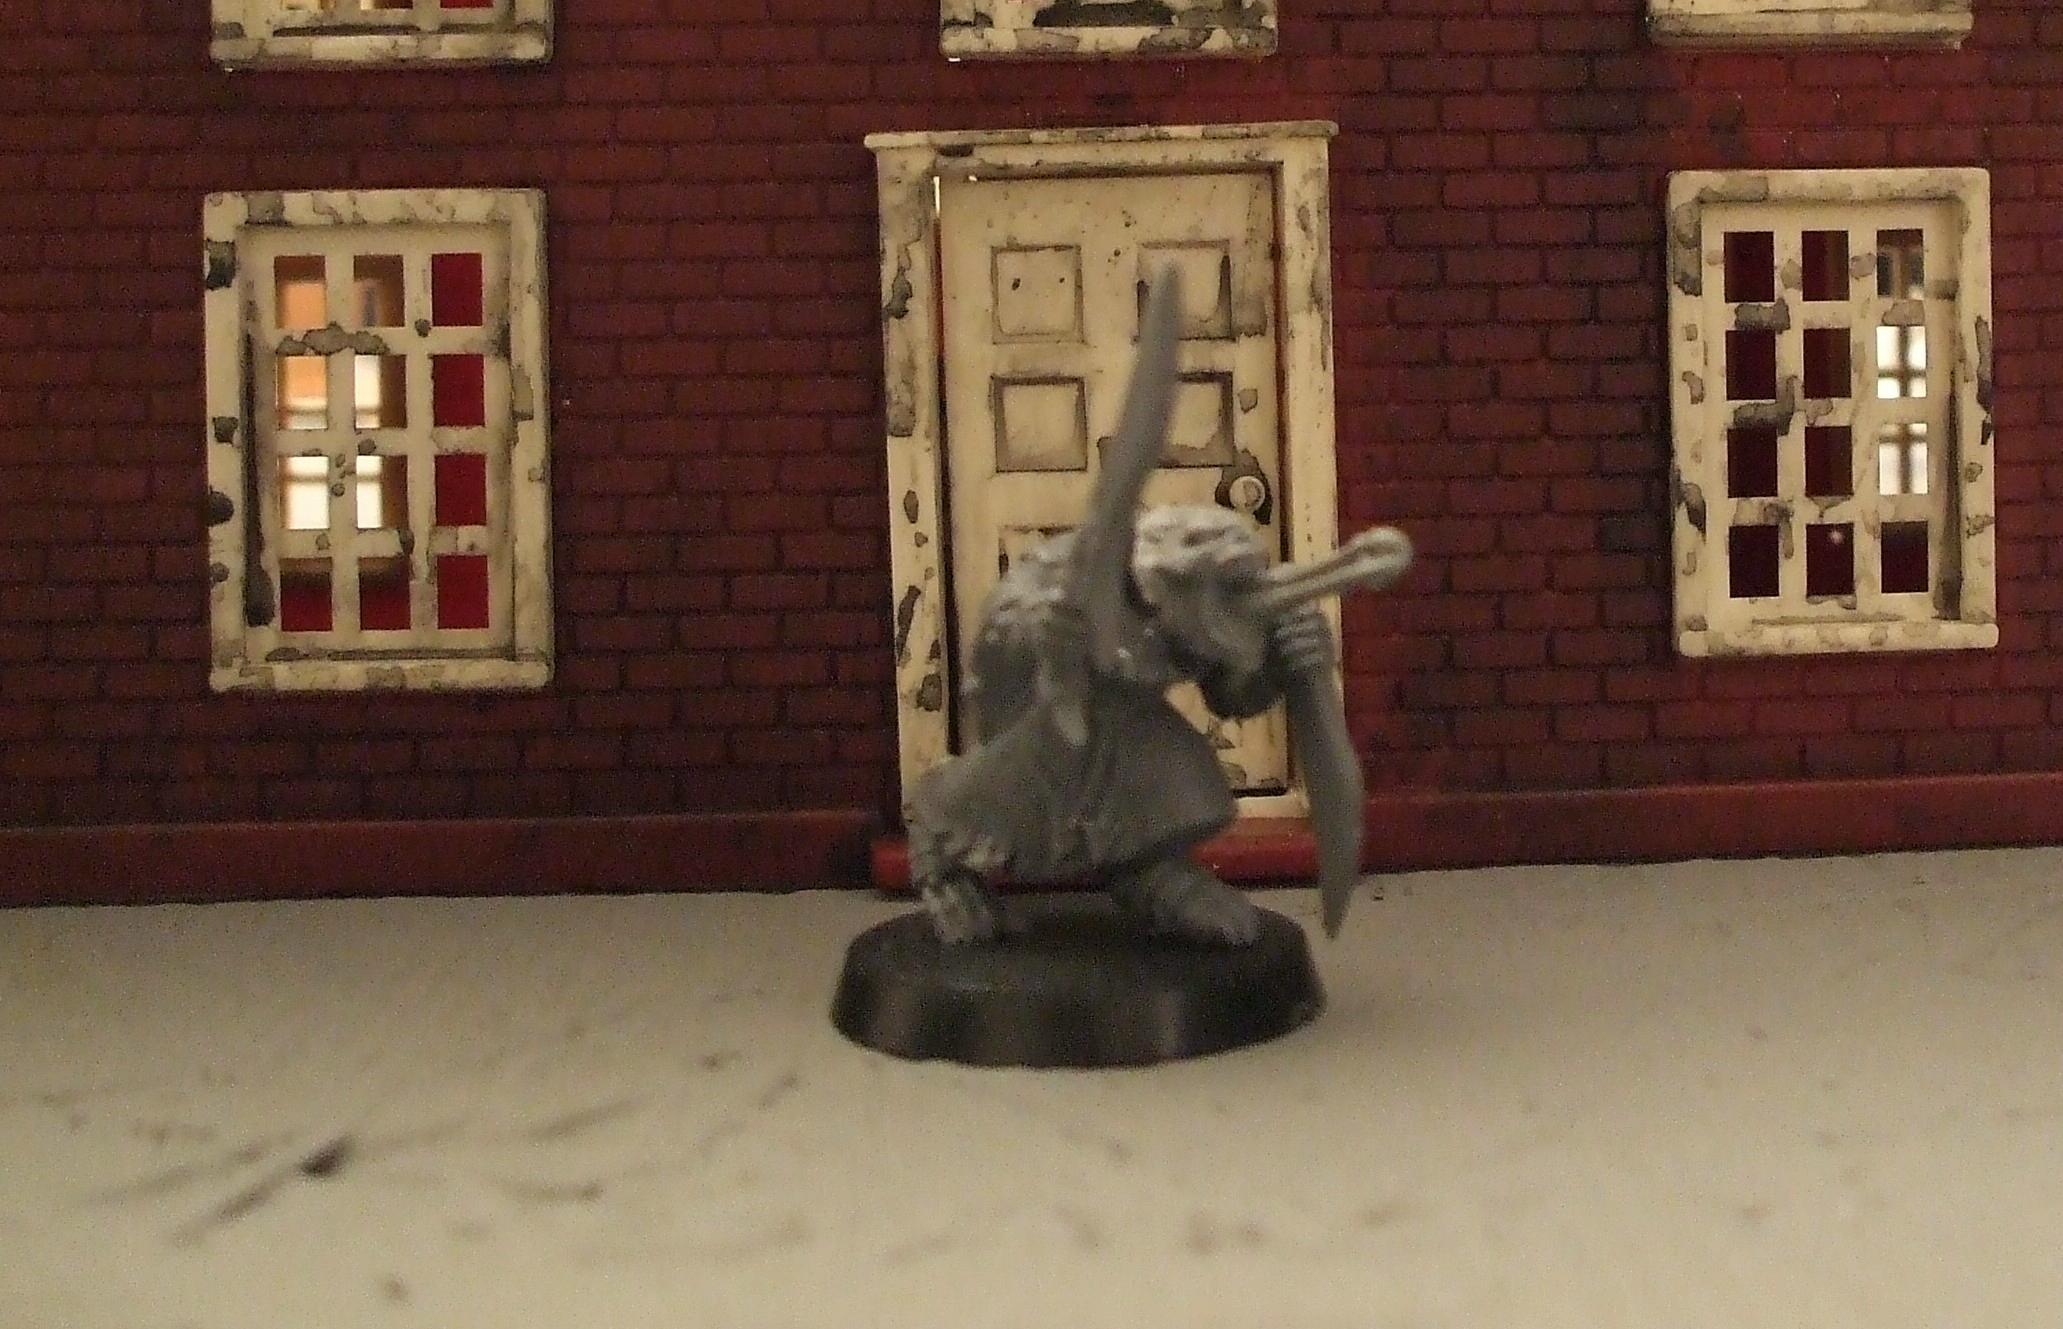 This one I like, cut down 'stealer head on monk body